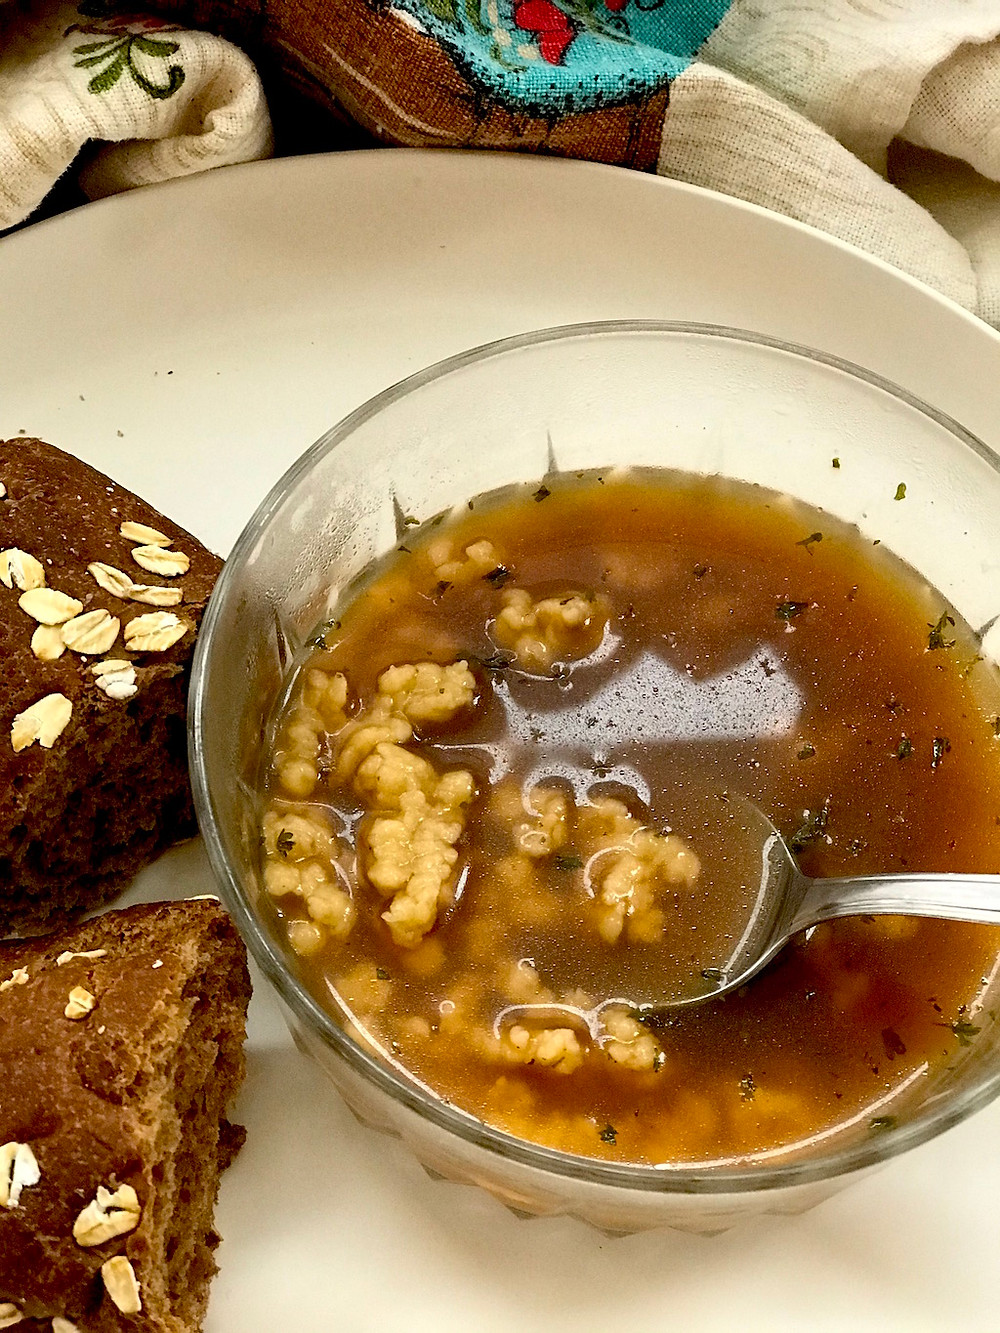 Beef broth with tiny dumplings in a glass bowl with brown bread on plate.